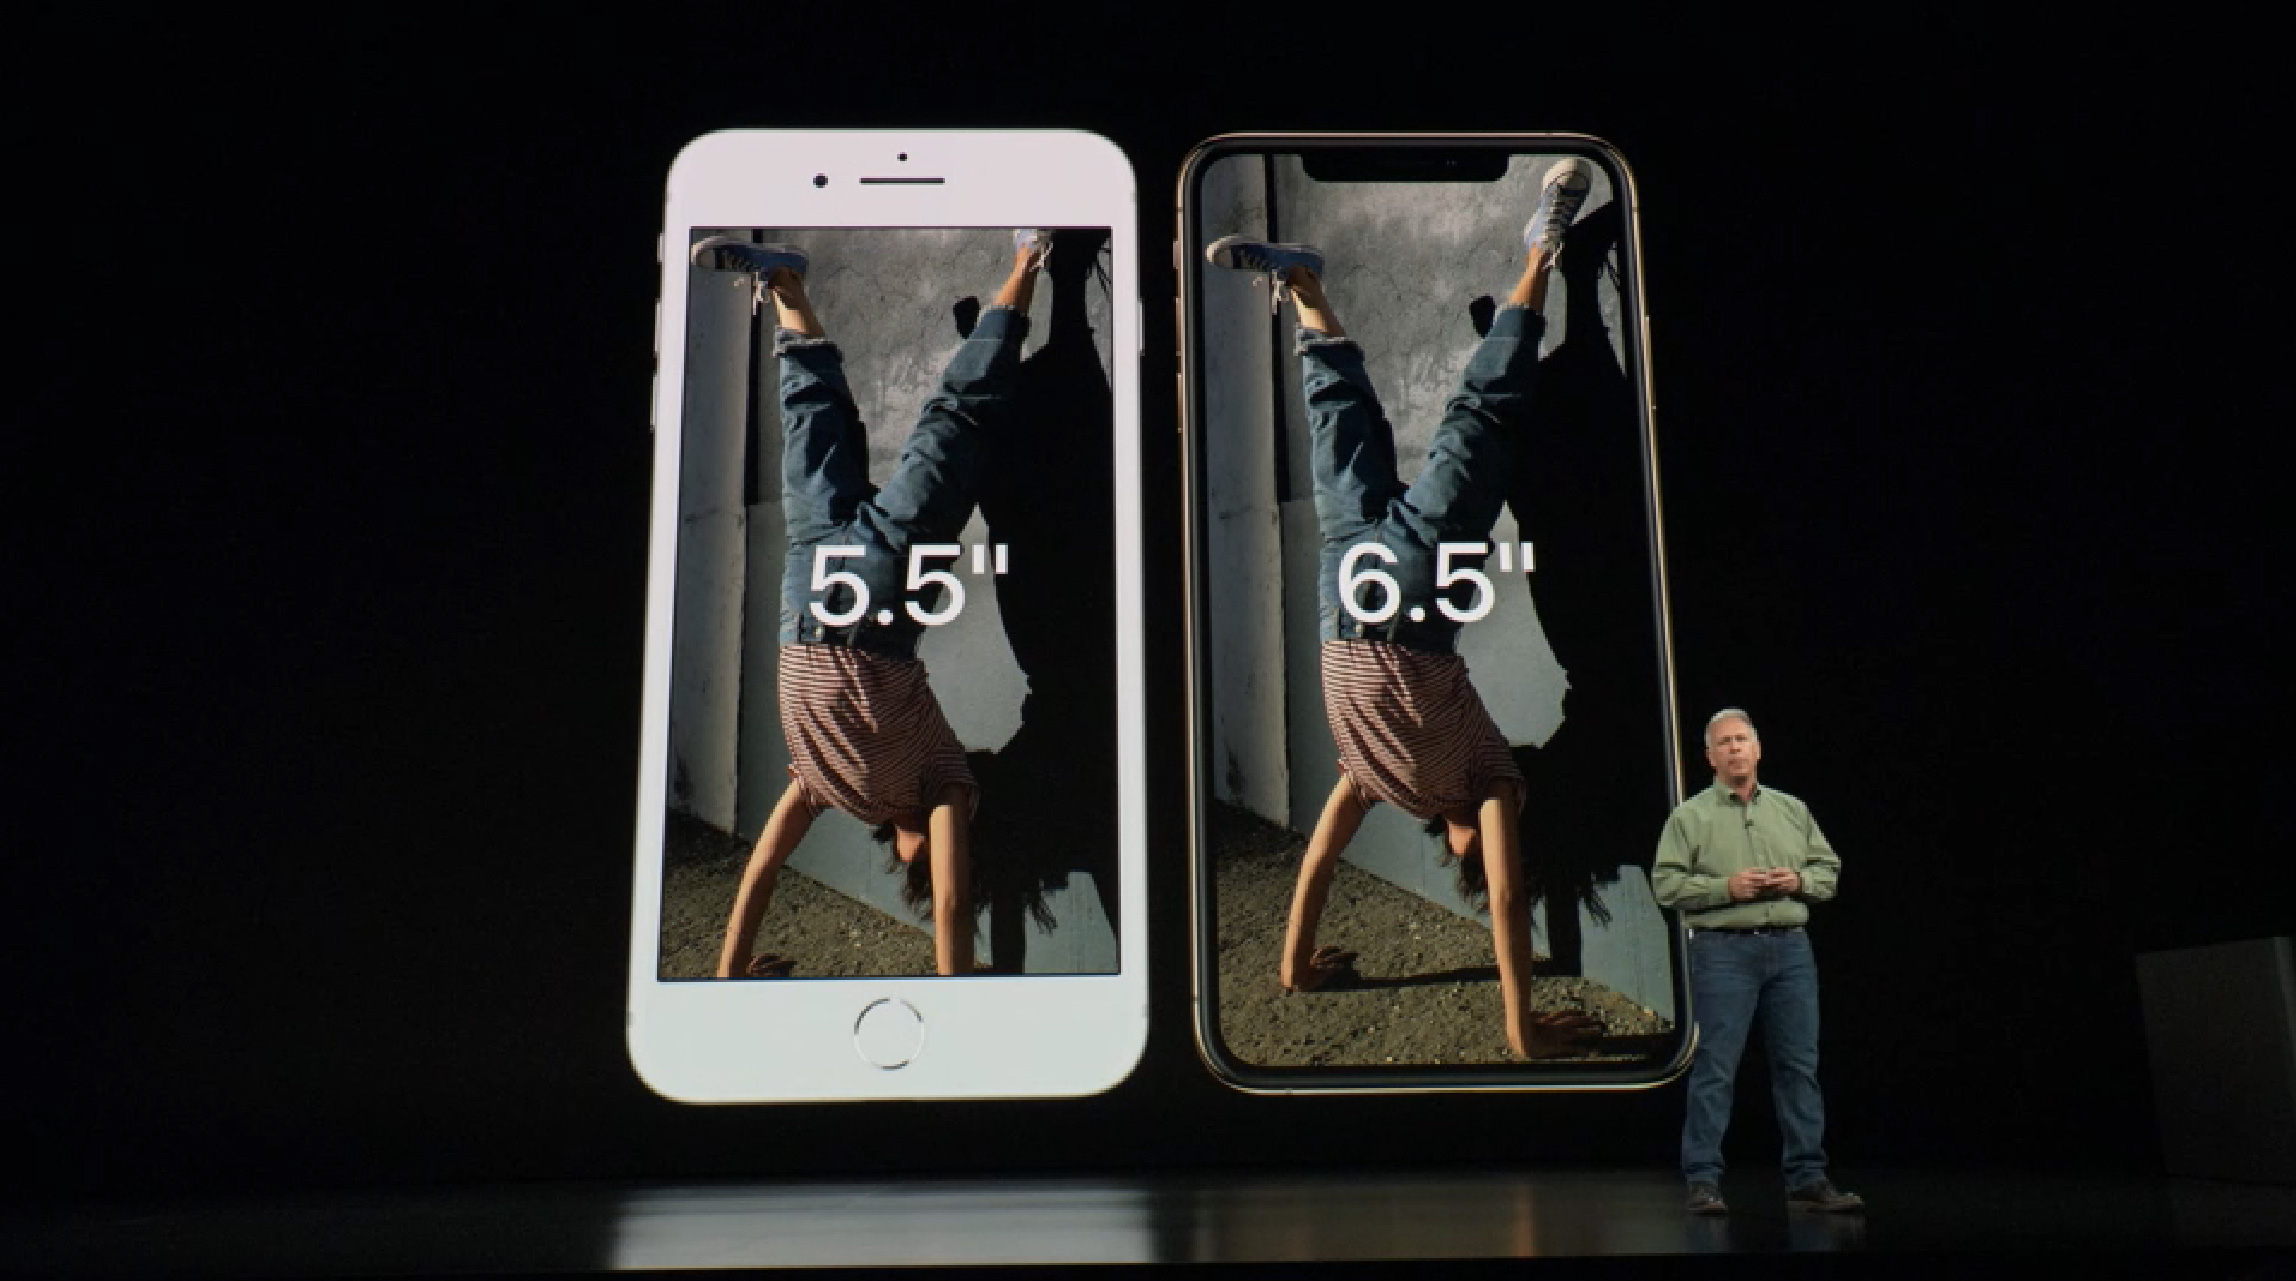 Iphone S Display Size